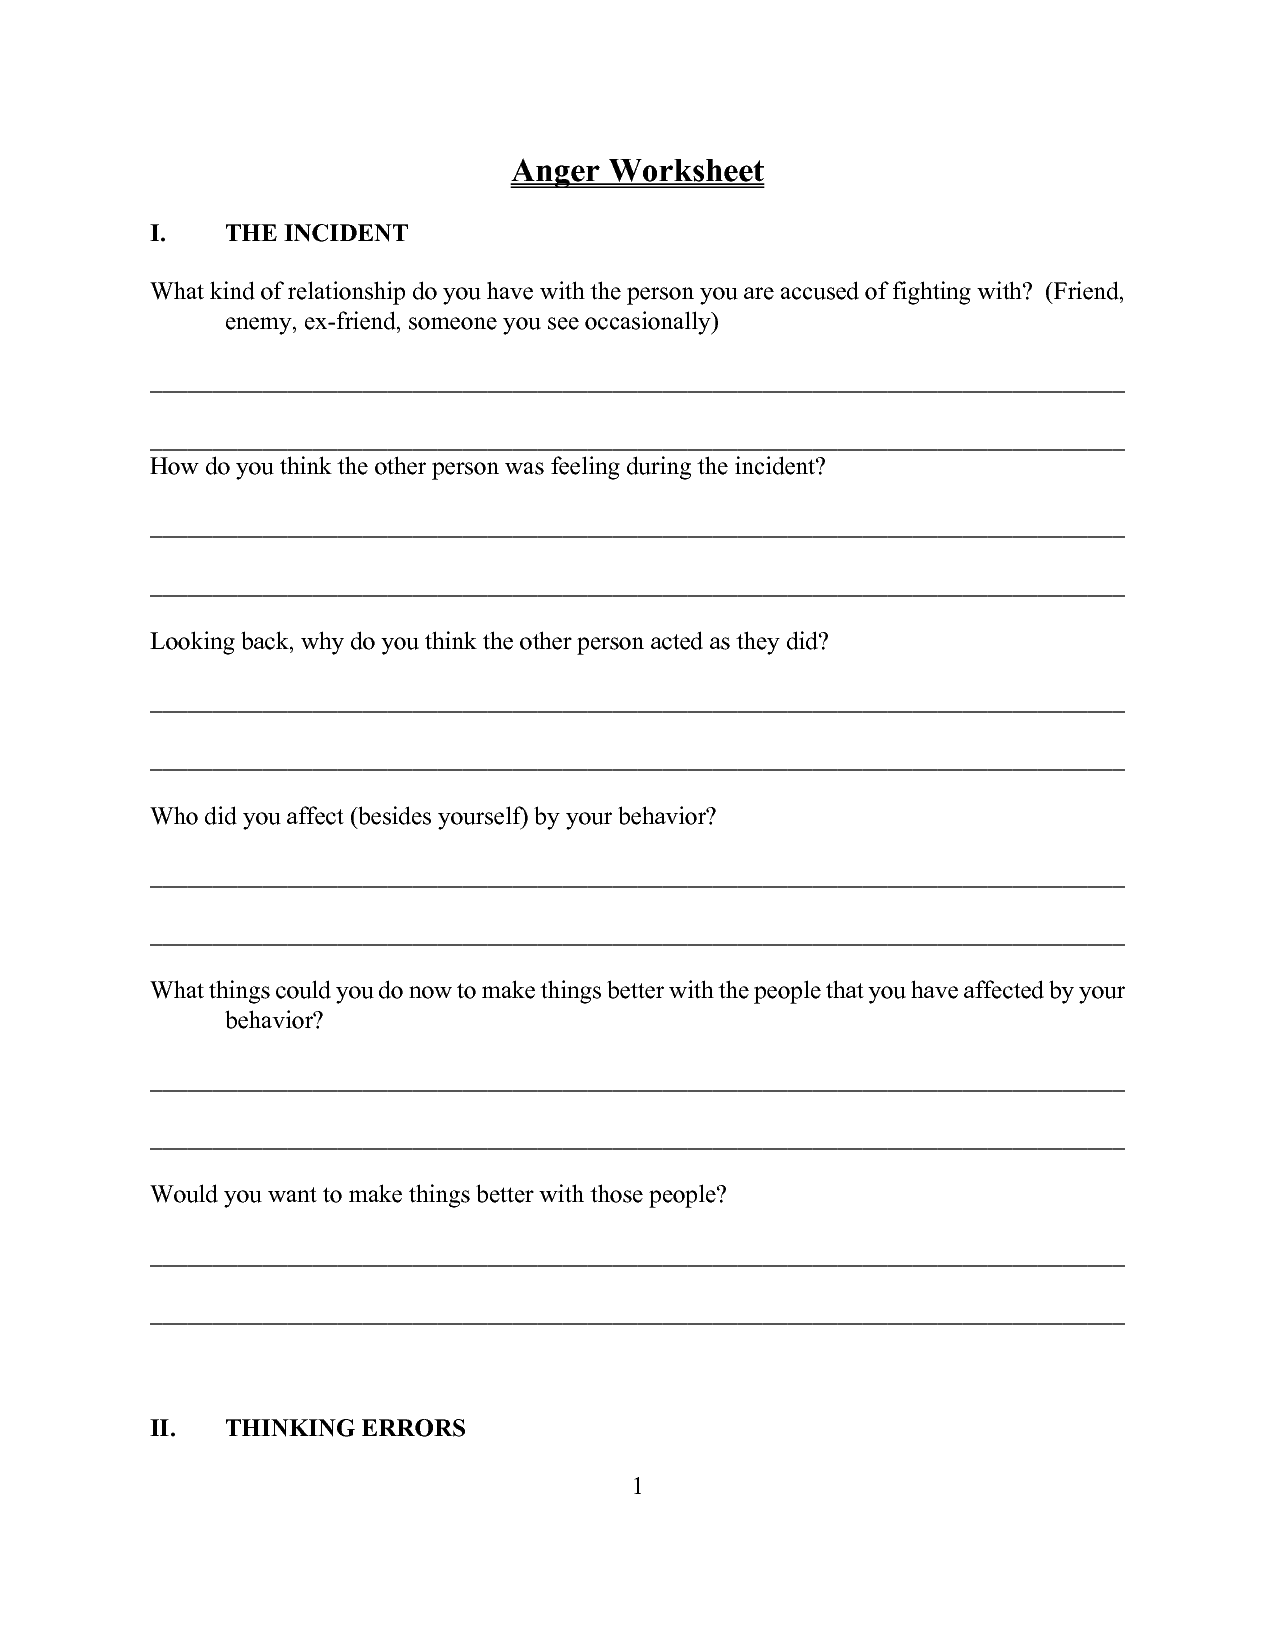 Worksheets Anger Management Worksheet a simple z on speedy products in anger management worksheets worksheets